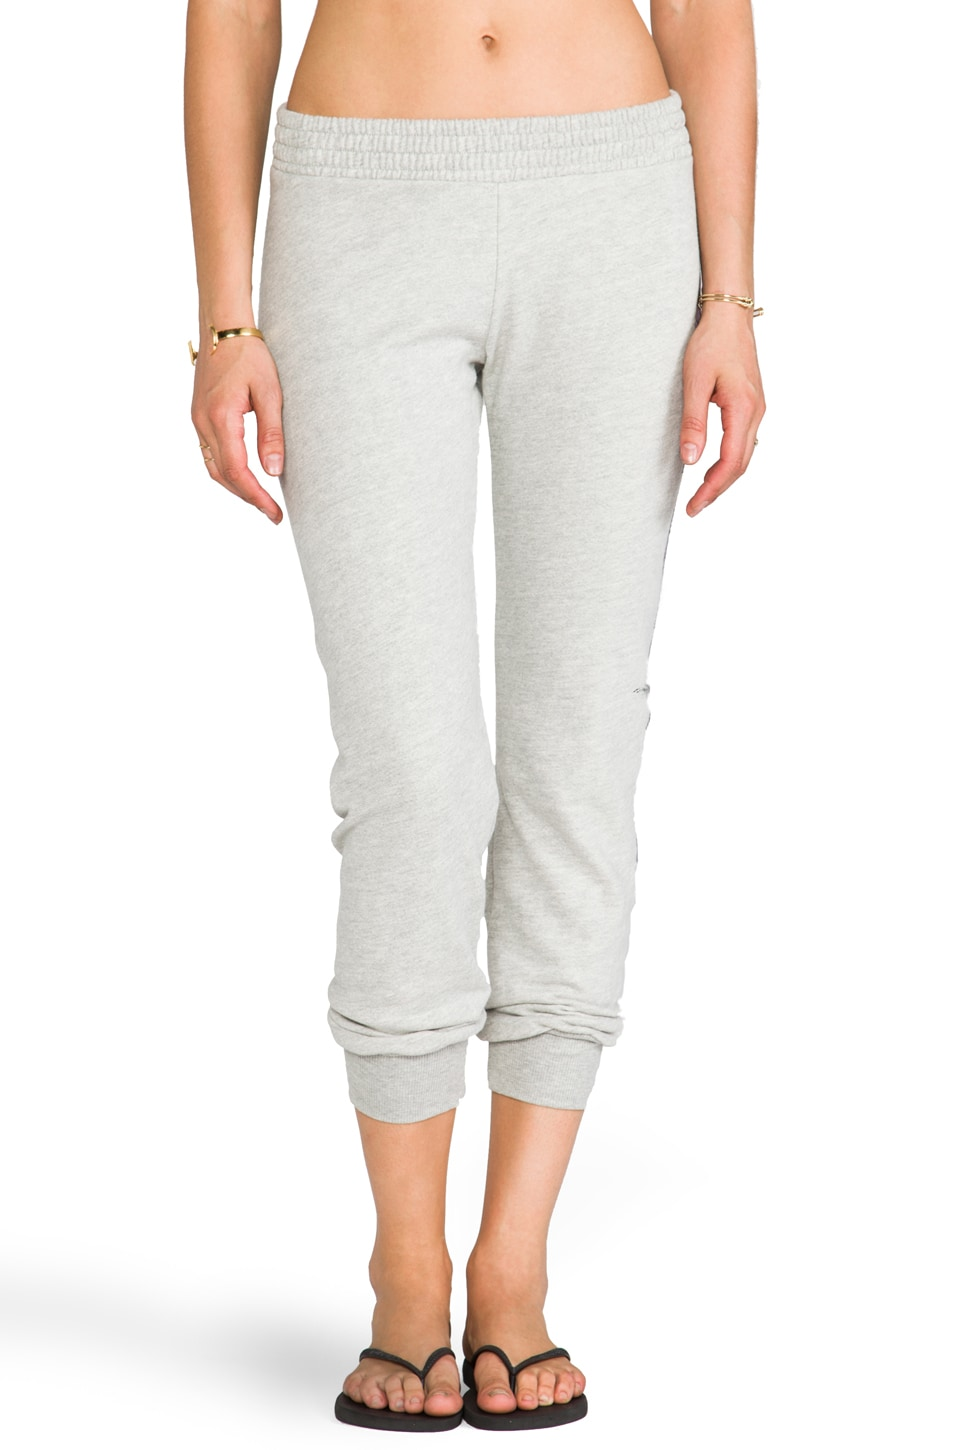 291 Bull Rose Slim Track Pant in Heather Grey